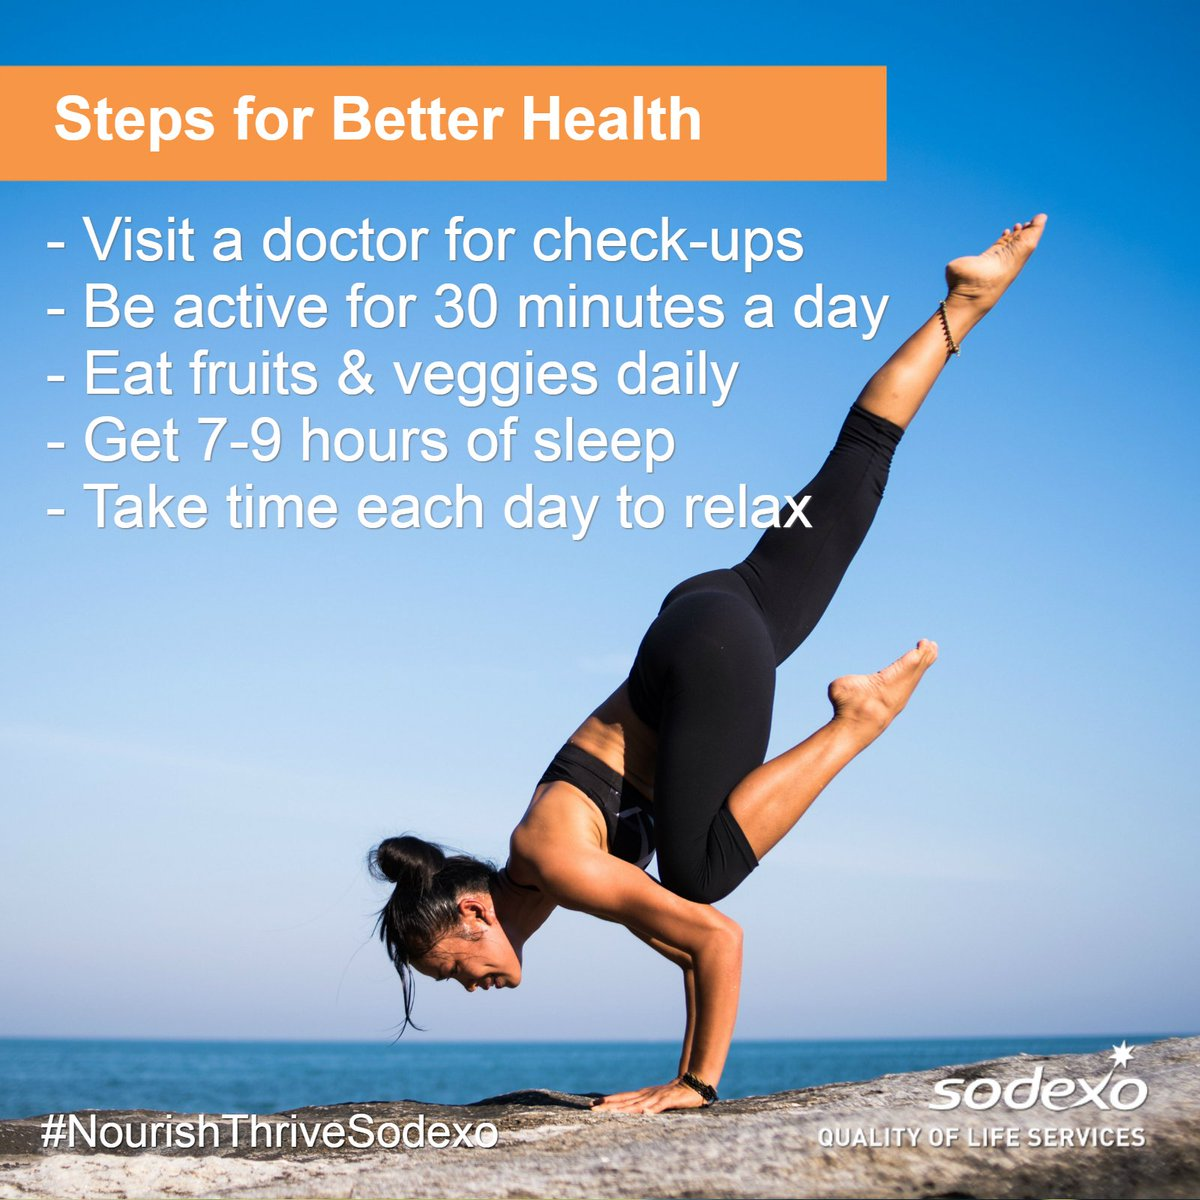 Minutes A Day O Eat Fruits Veggies Daily Get 7 9 Hours Of Sleep Take Time Each To Relax NourishThriveSodexo MotivationMondaypictwitter